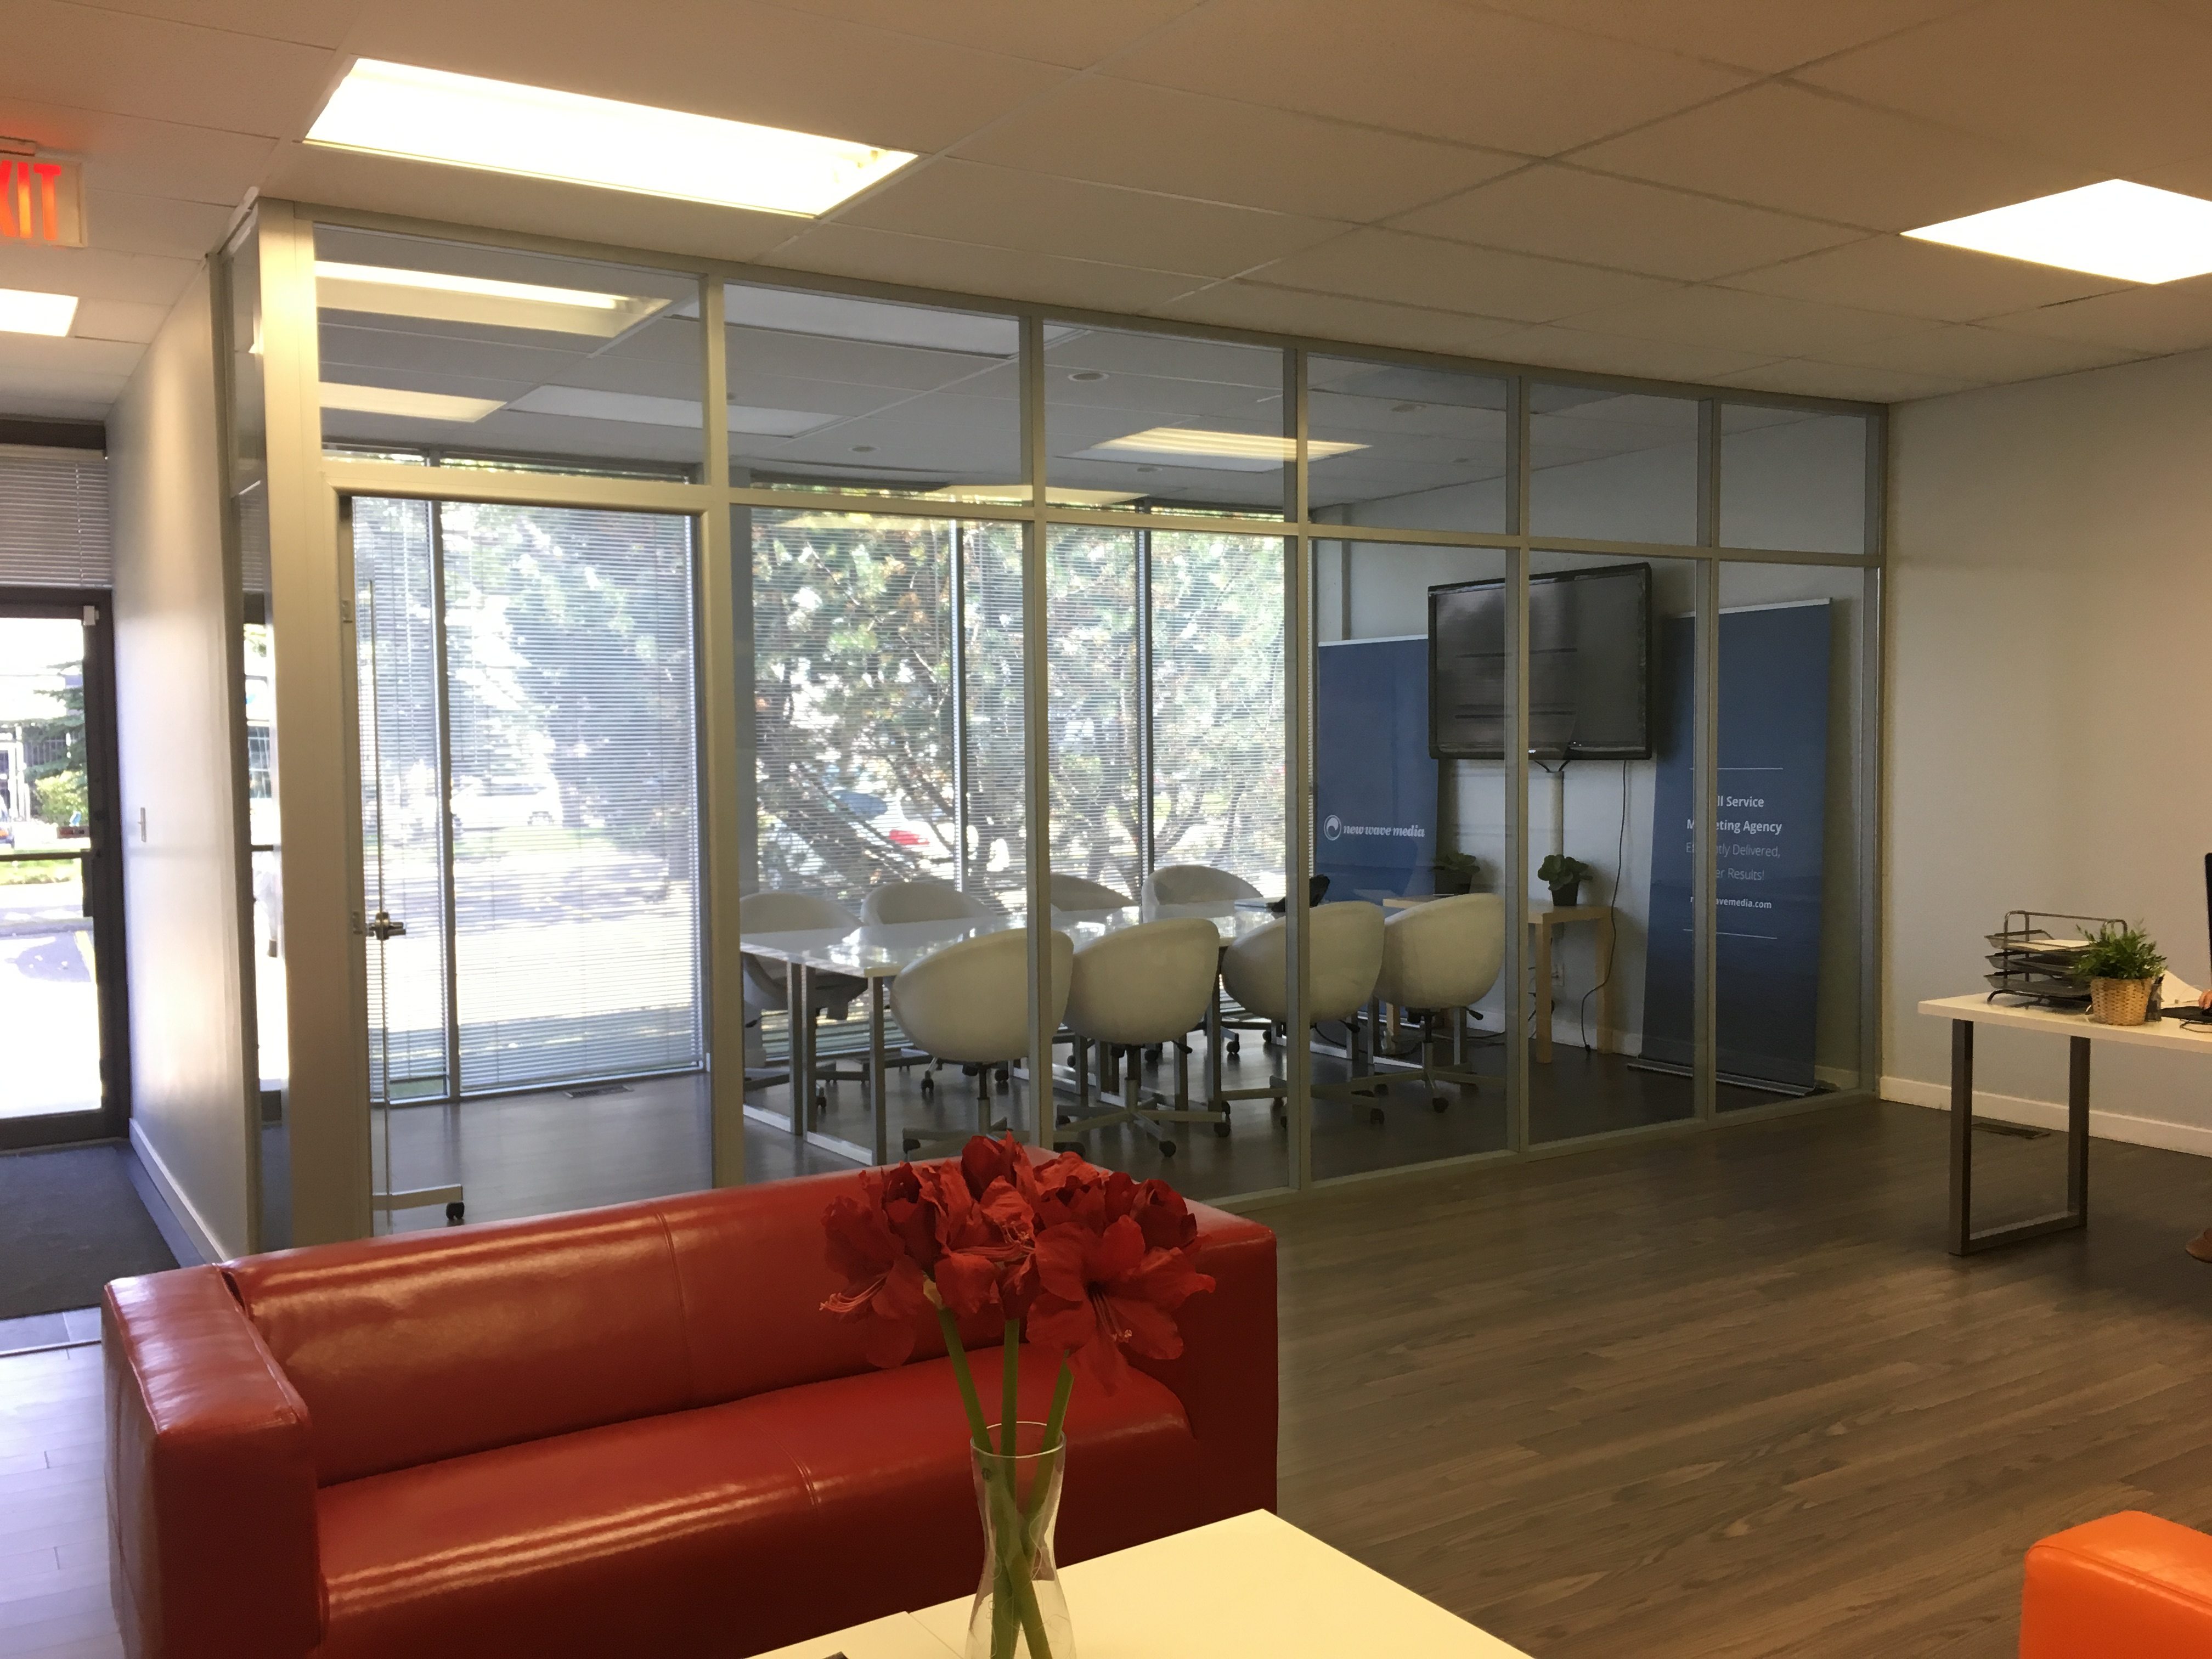 Office Space with Boardroom For Lease in Calgary